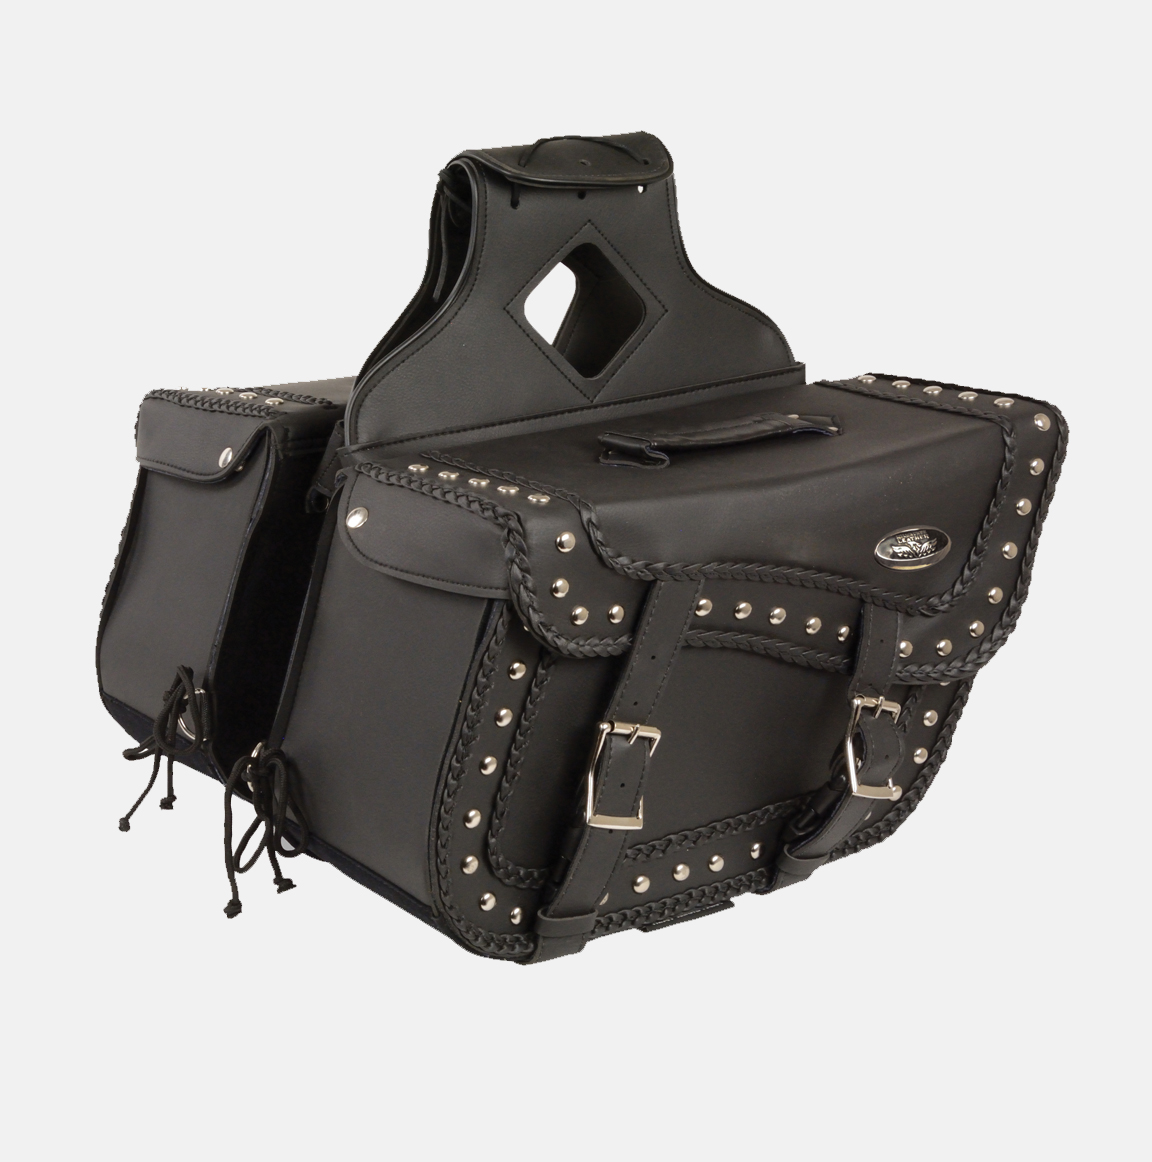 Braided studded zip off pvc saddlebag bikers gear for Motor cycle saddle bags